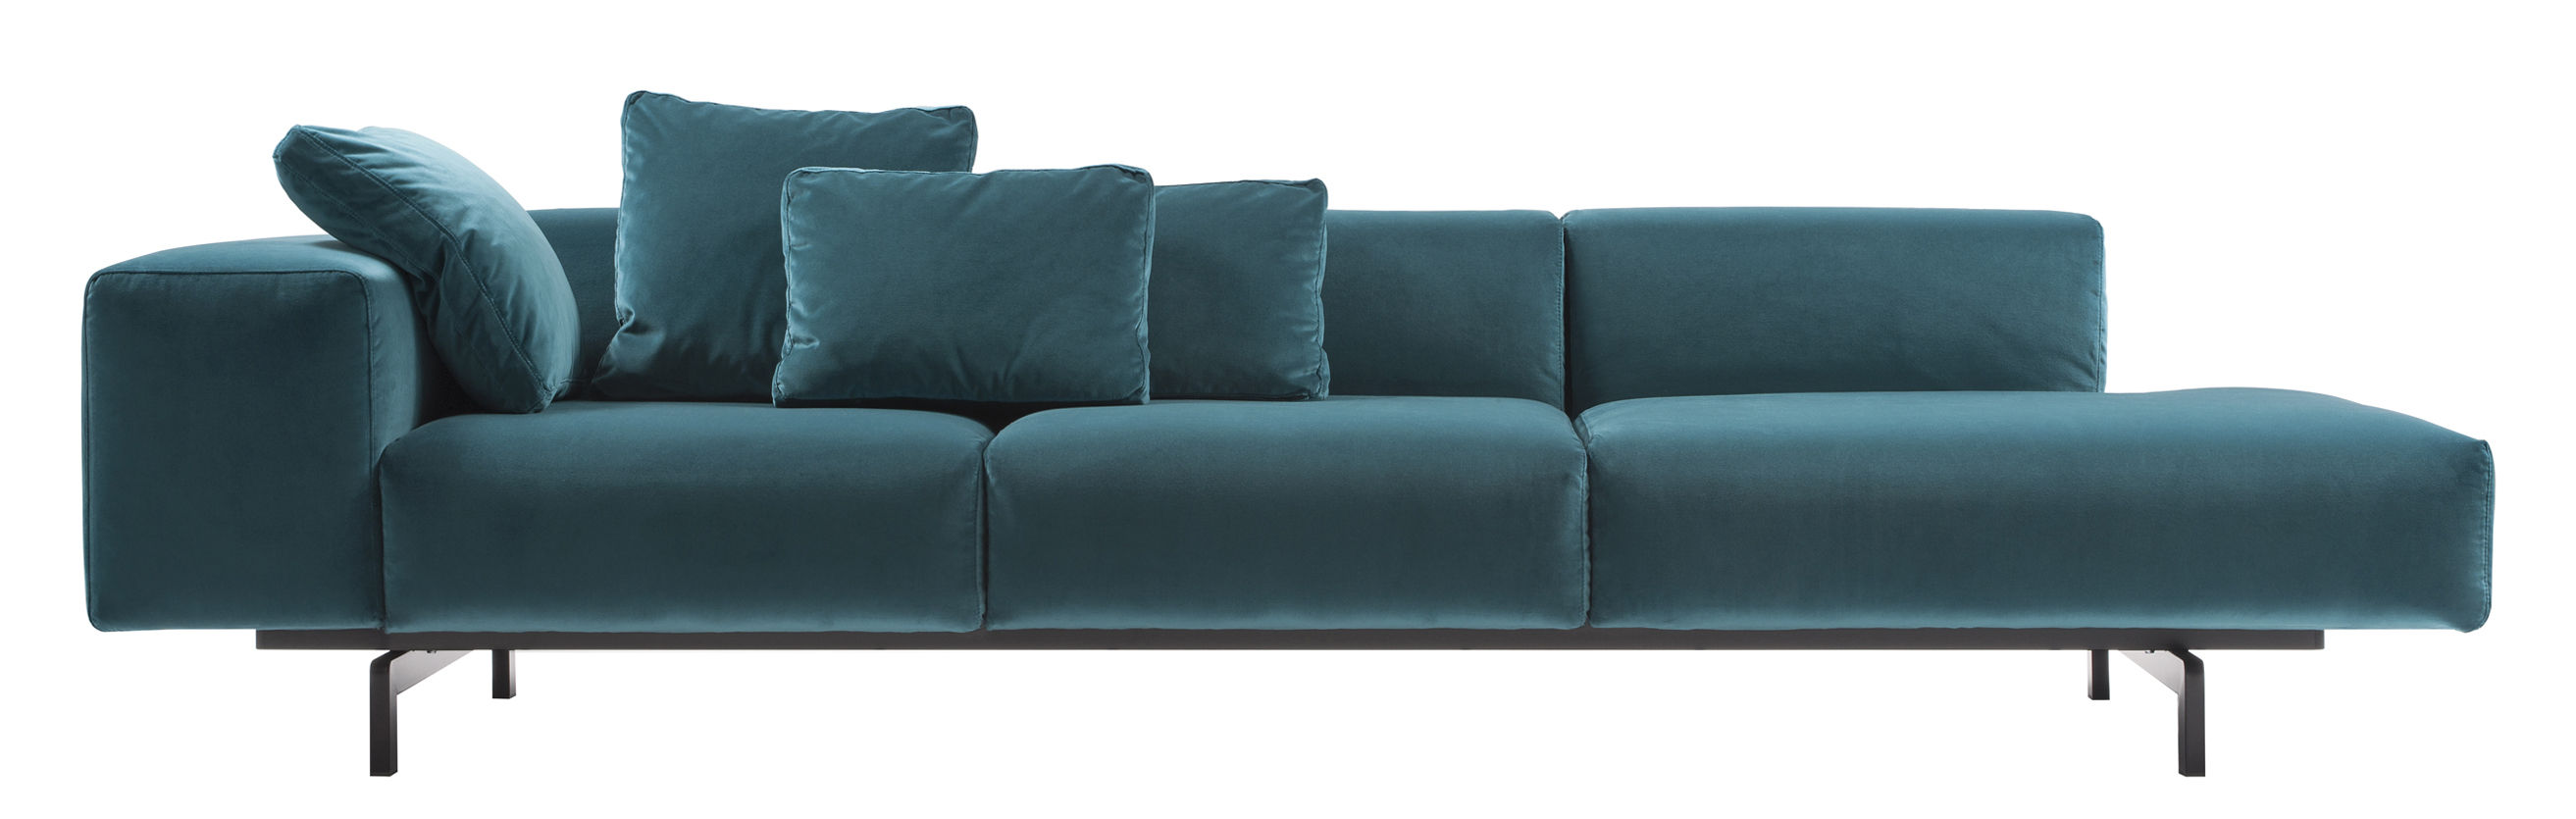 Kartell Sofa Largo Velluto Straight Sofa 3 Seaters L 298 Cm Left Armrest By Kartell